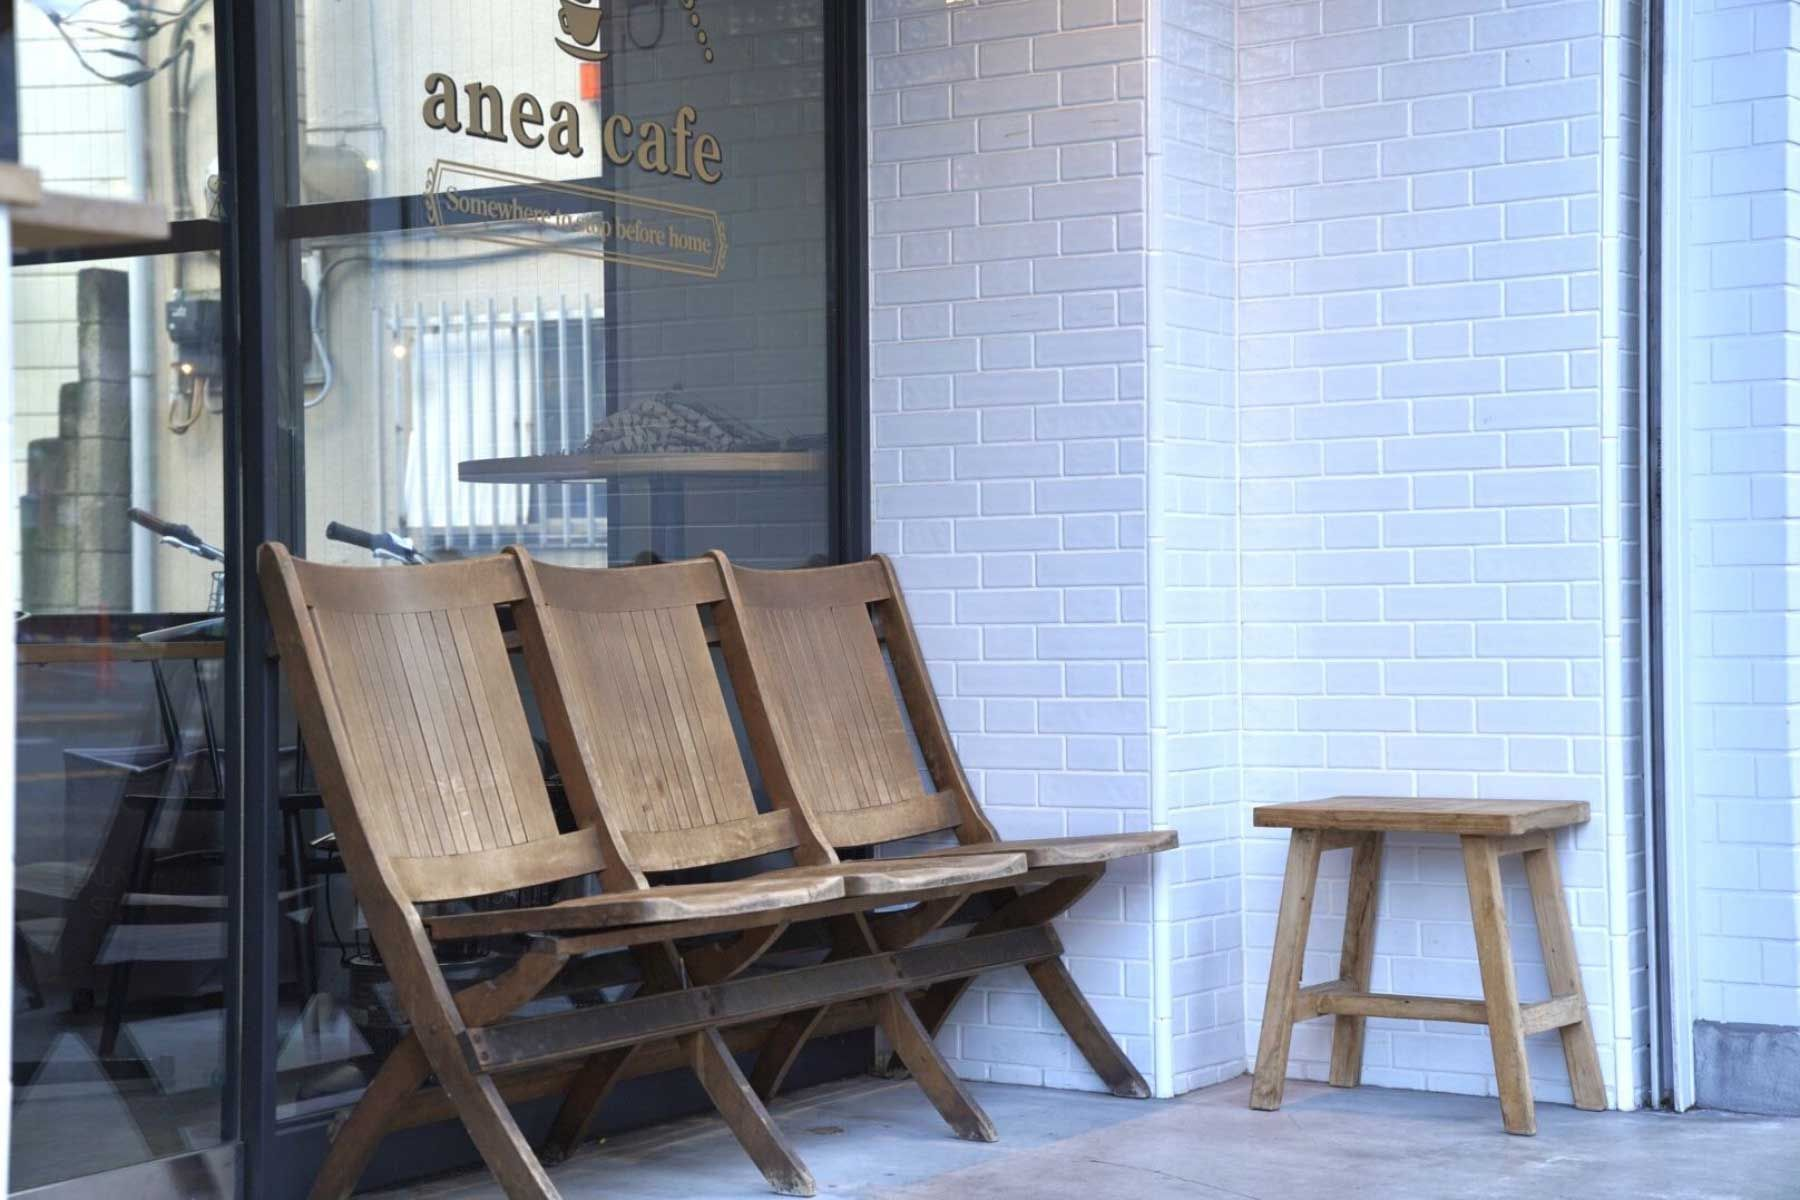 anea cafe/店舗 (アネア カフェ)1F